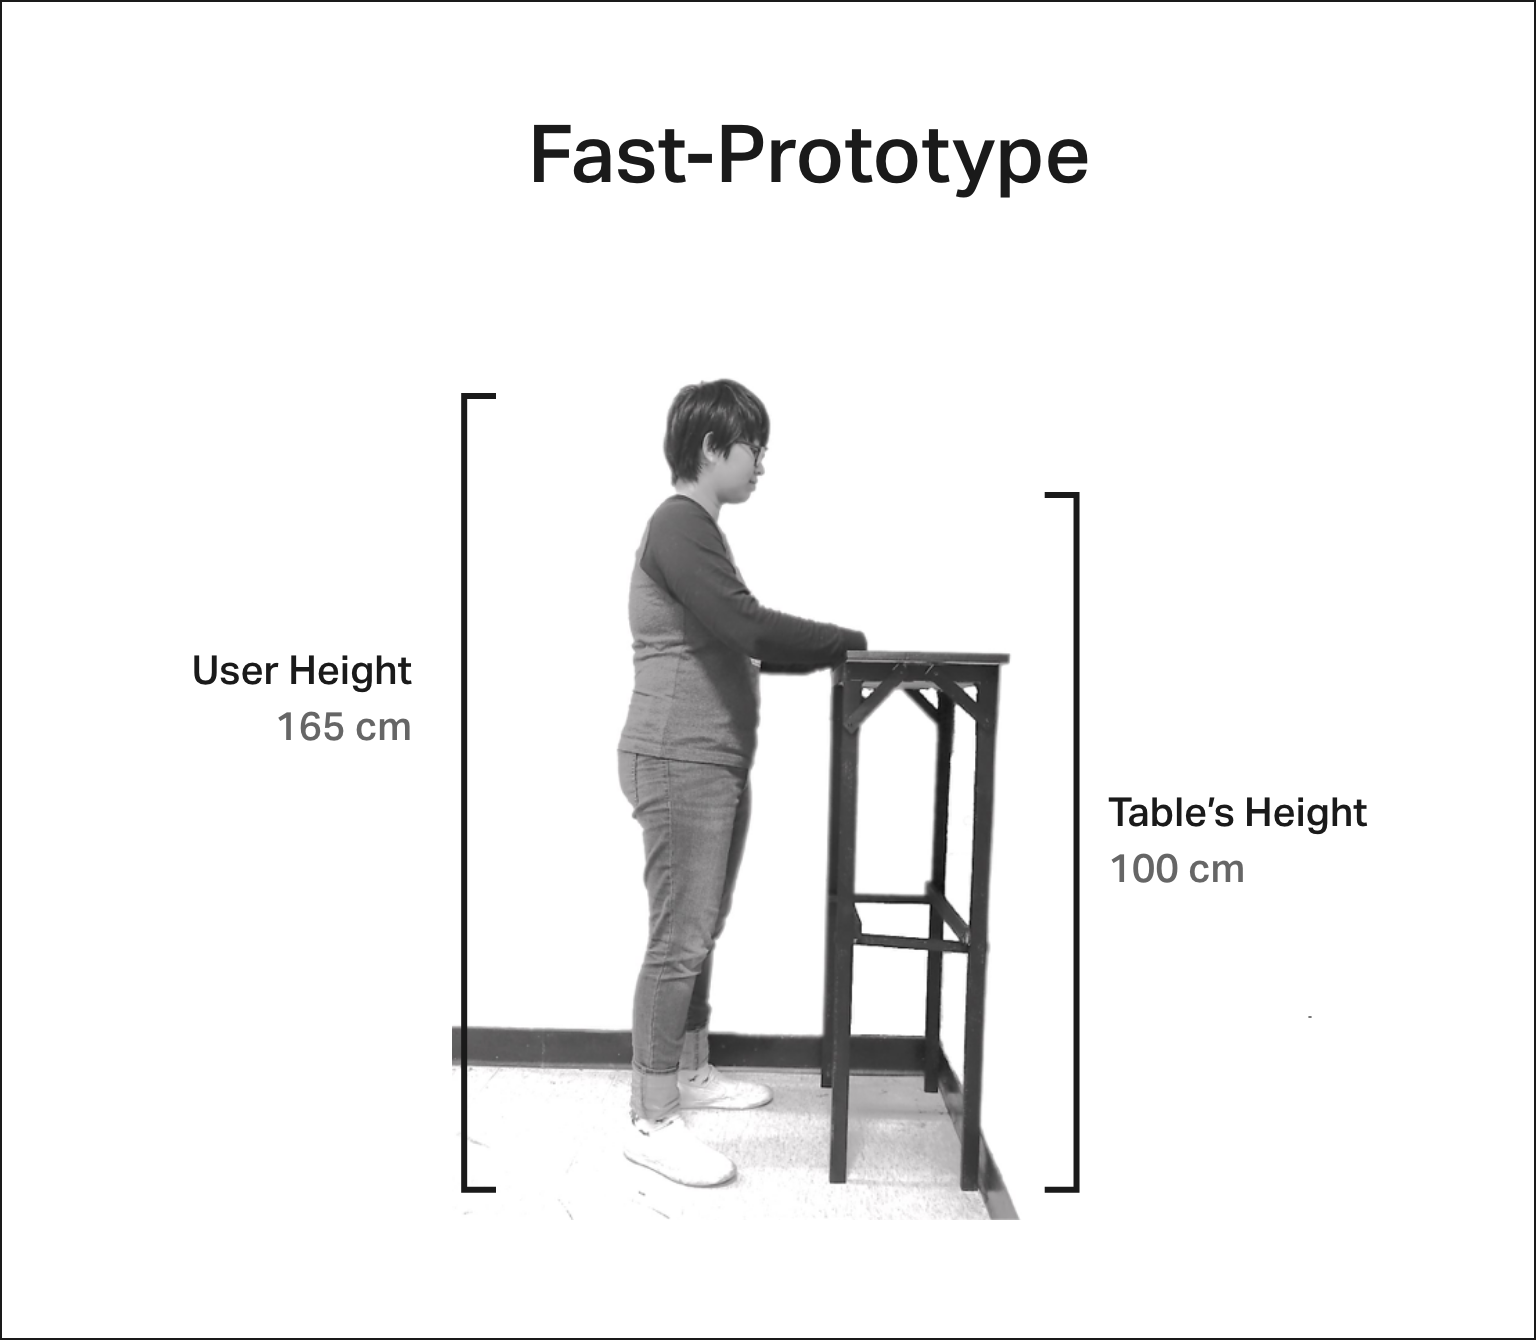 wood-made fast-prototype table and user